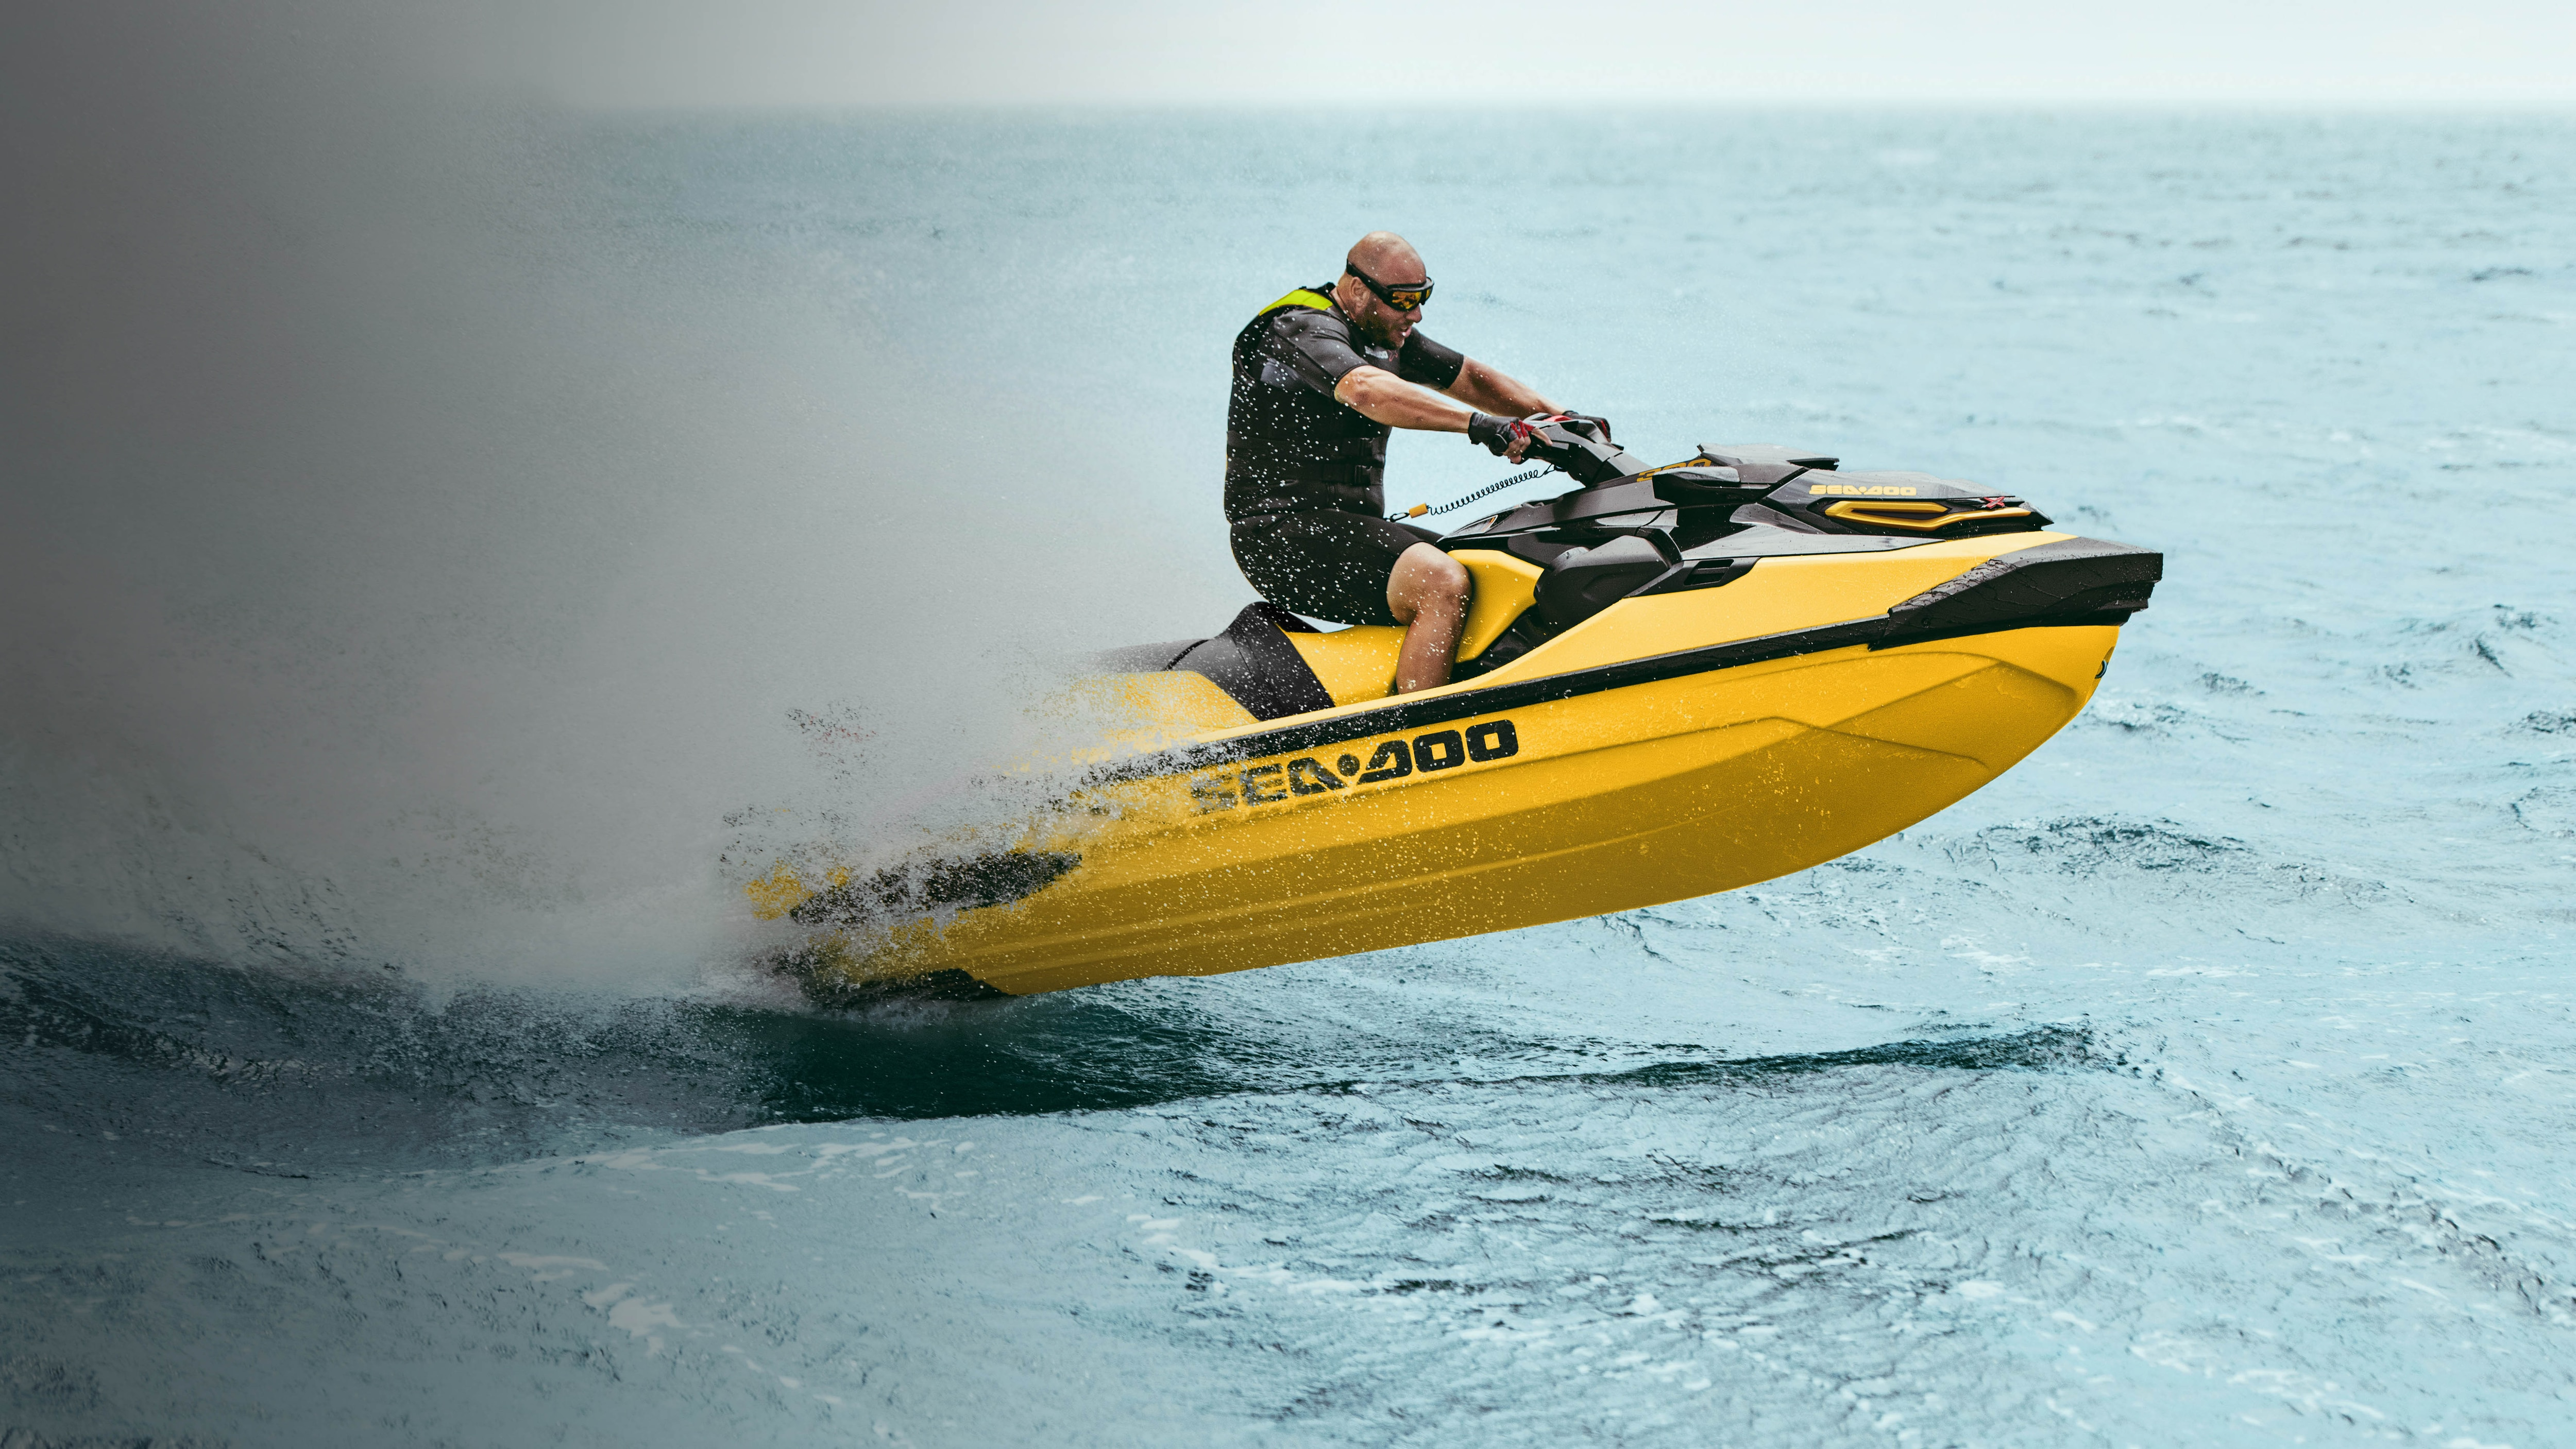 Man speeding with a Sea-Doo RXT-X and its stable hull